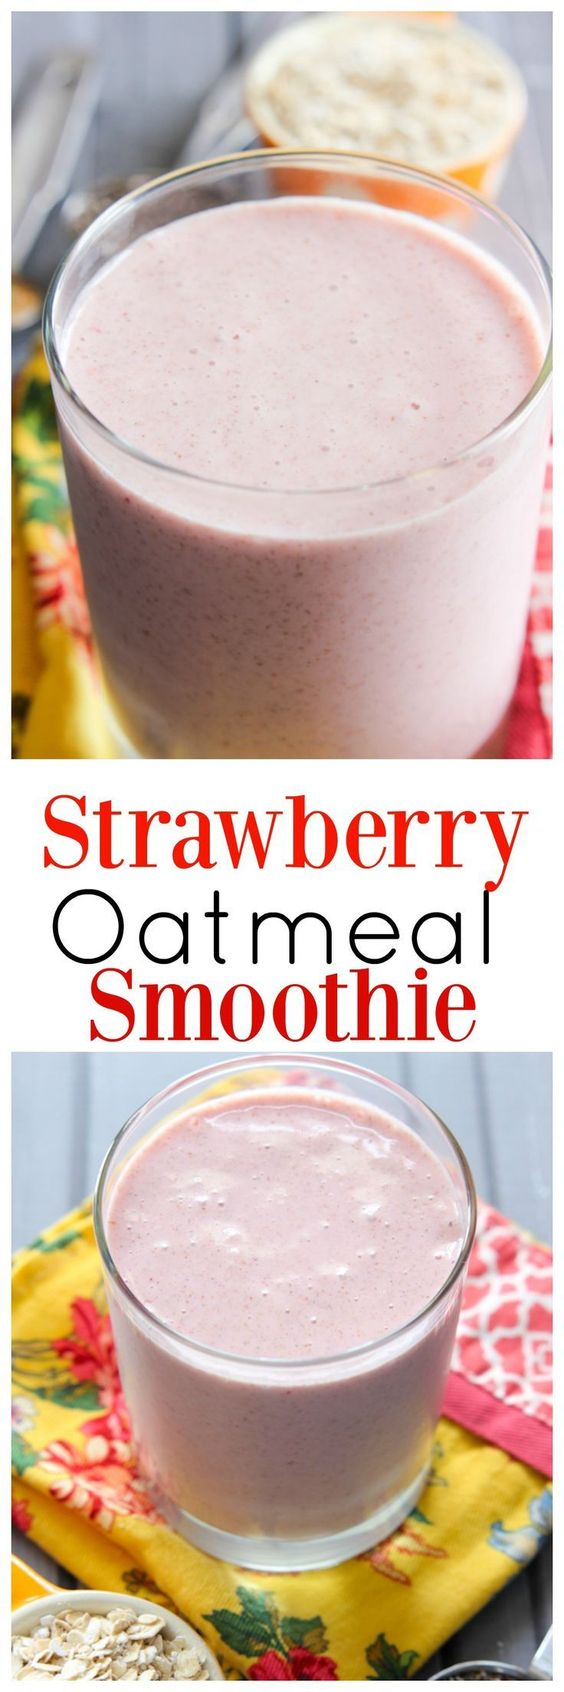 If you're looking for a delicious smoothie recipe to add to your collection, you need this Strawberry Oatmeal Smoothie recipe. It's full of lots of good-for-you stuff and keeps you full!